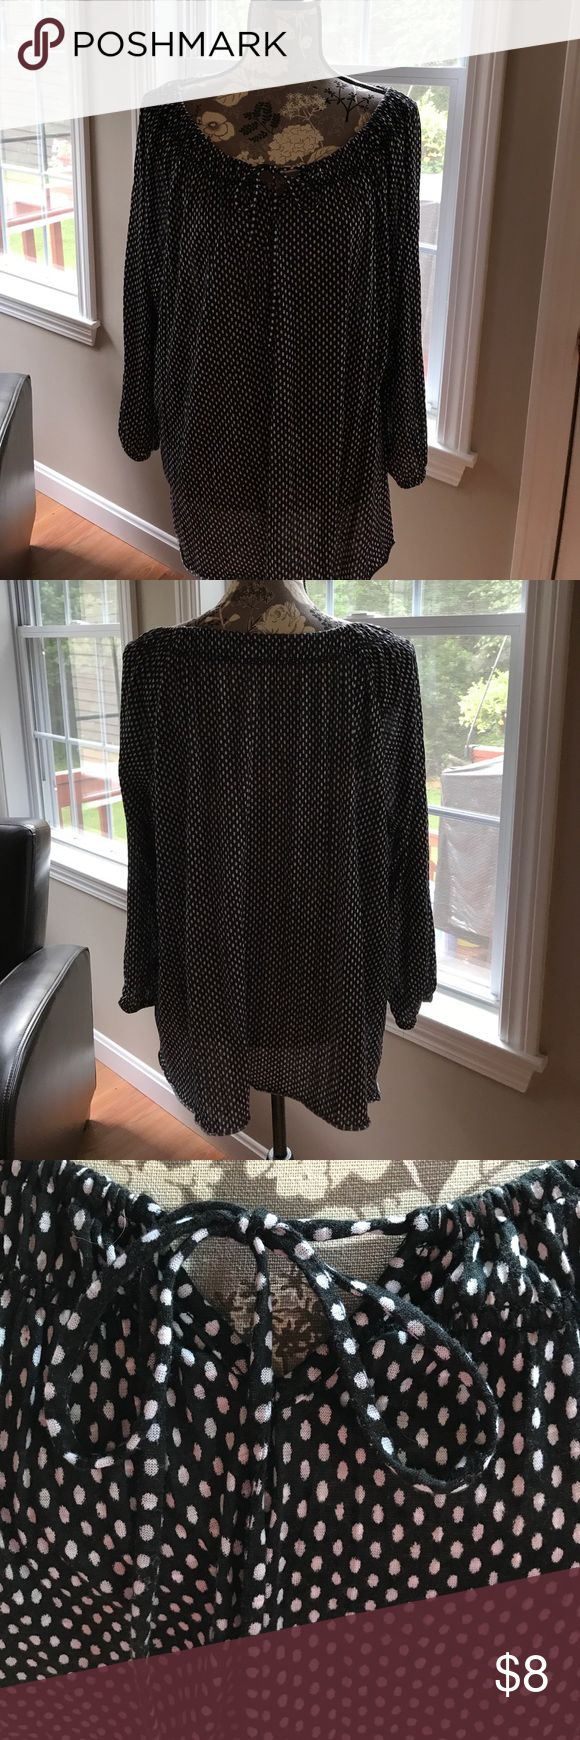 Black with white polkadot smock top size XL Comfy and loose-fitting pull-over smock top  The tag is cut out of the neckline.  Nice preowned condition.  Black with tiny white polkadots.  Elastic around wrist of sleeves. Size XL Tops Blouses